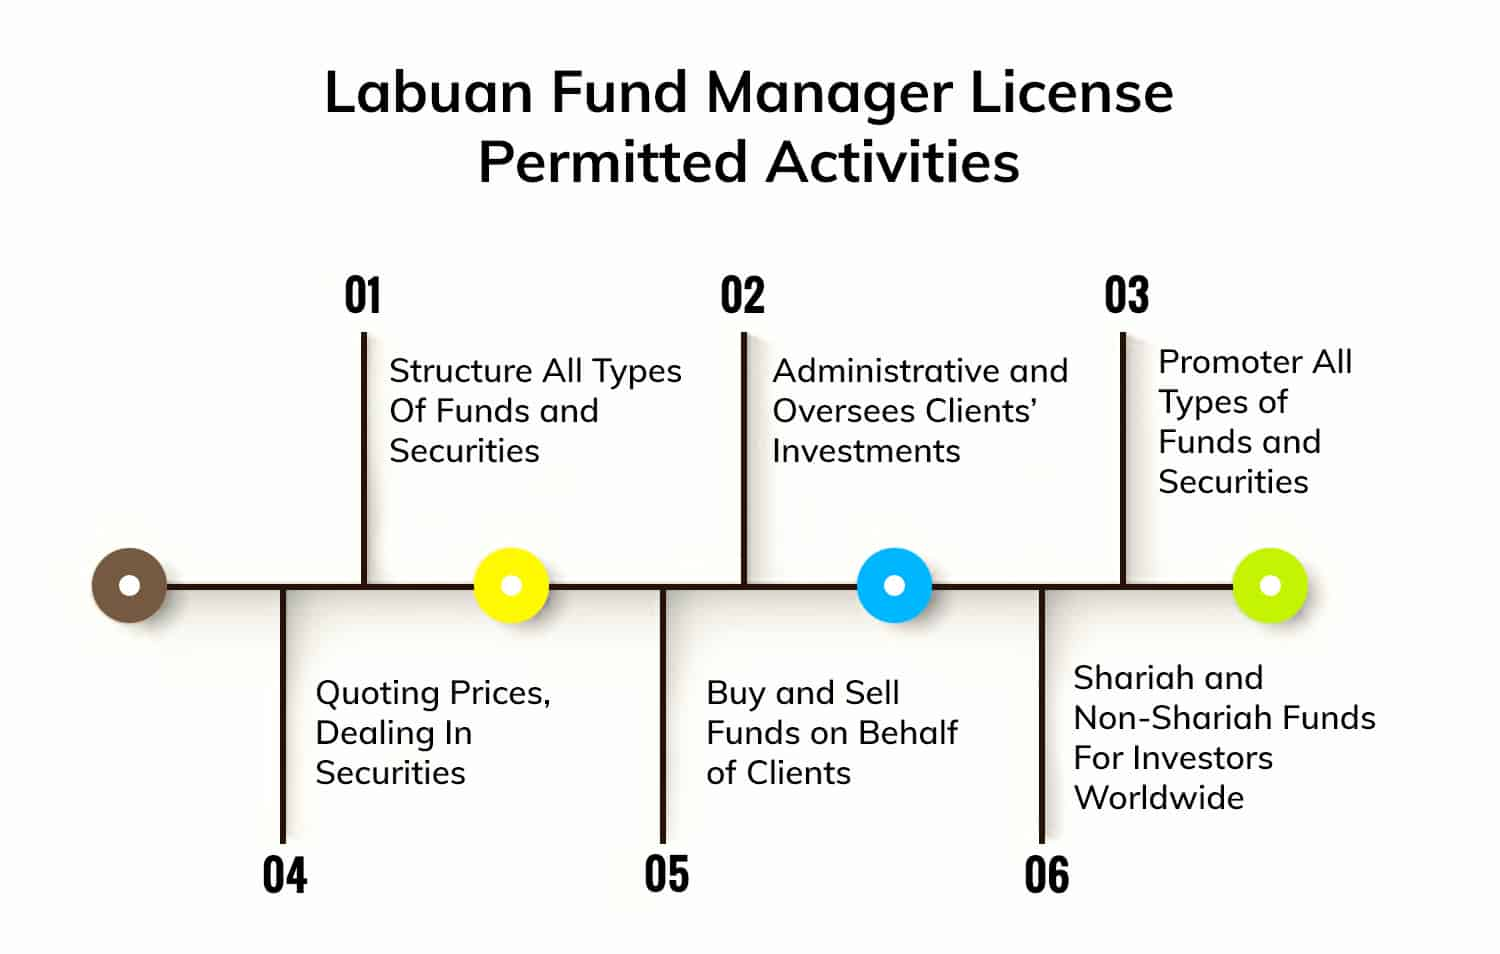 Labuan-Fund-Manager-License-Permitted-Activities